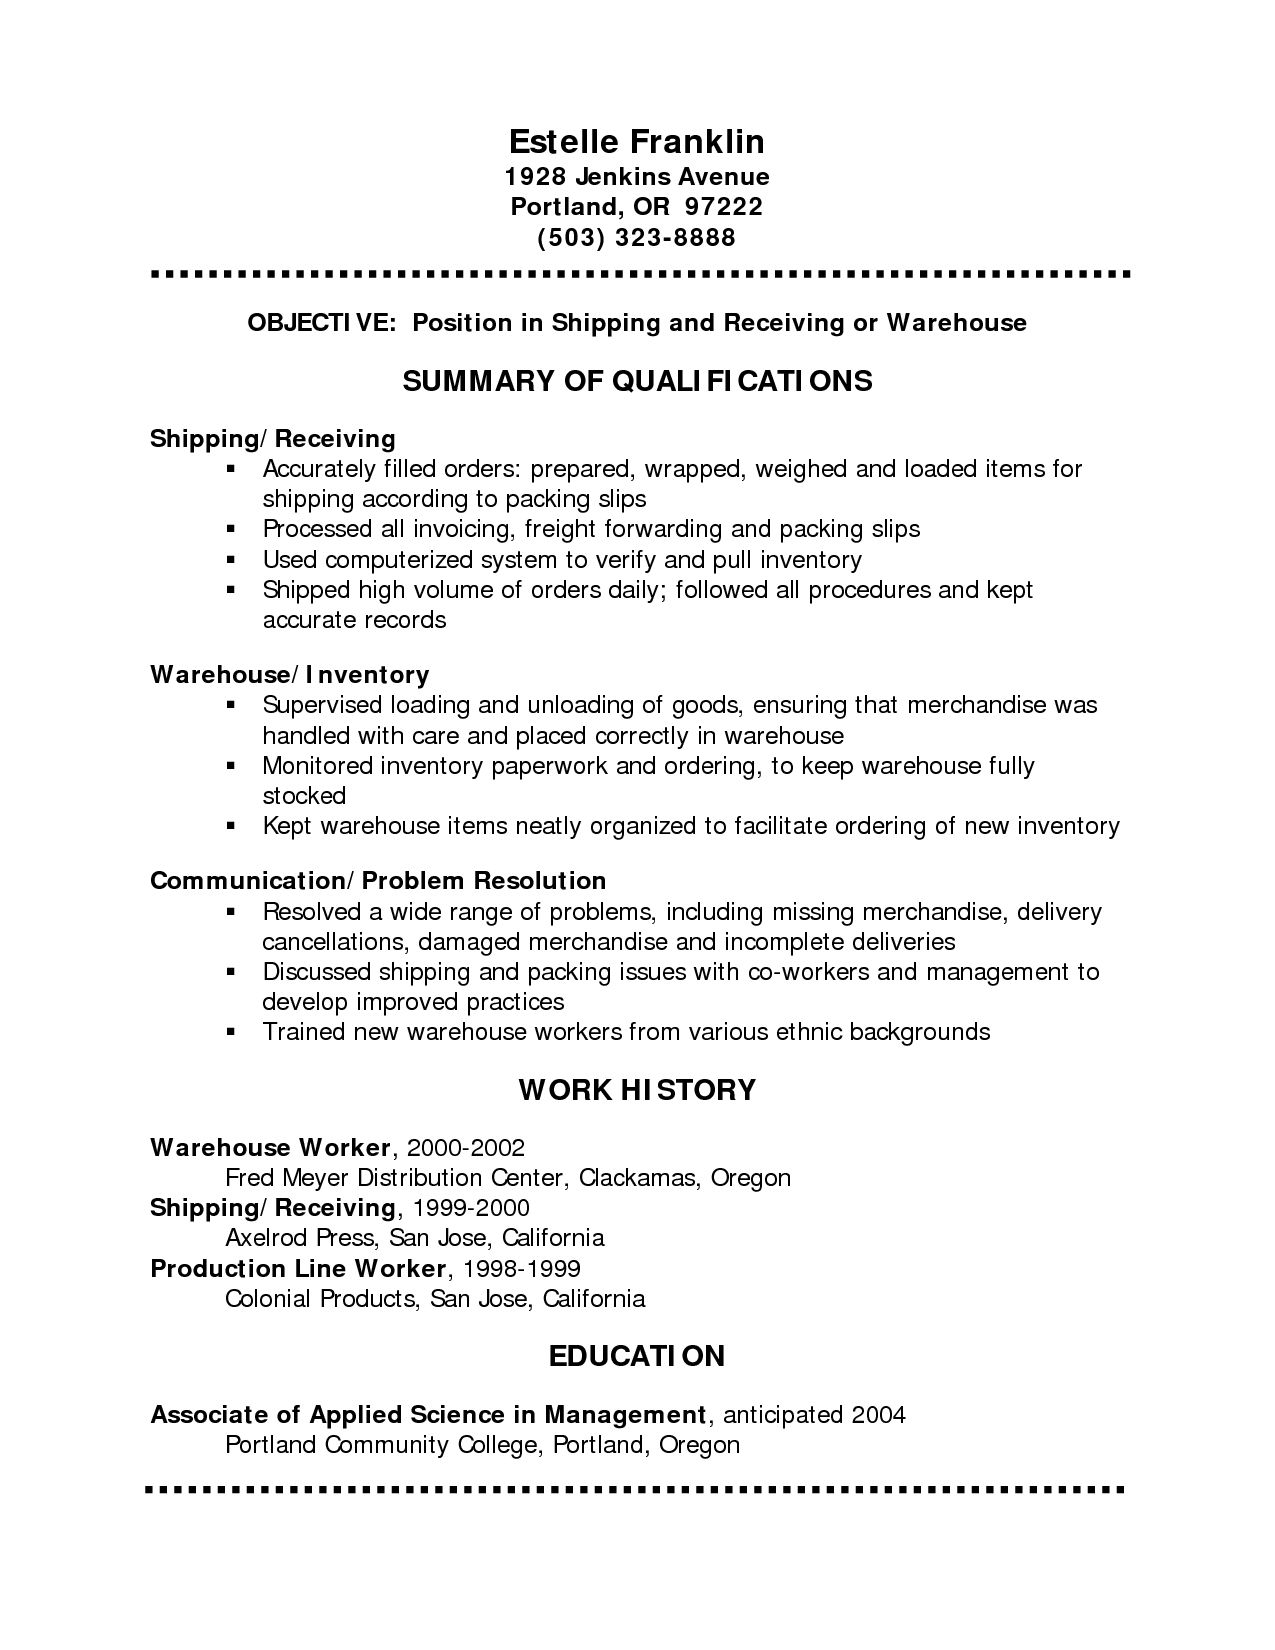 Computer Engineer Resume Apa Resume Sample Computer Engineer Cover Letter Costume